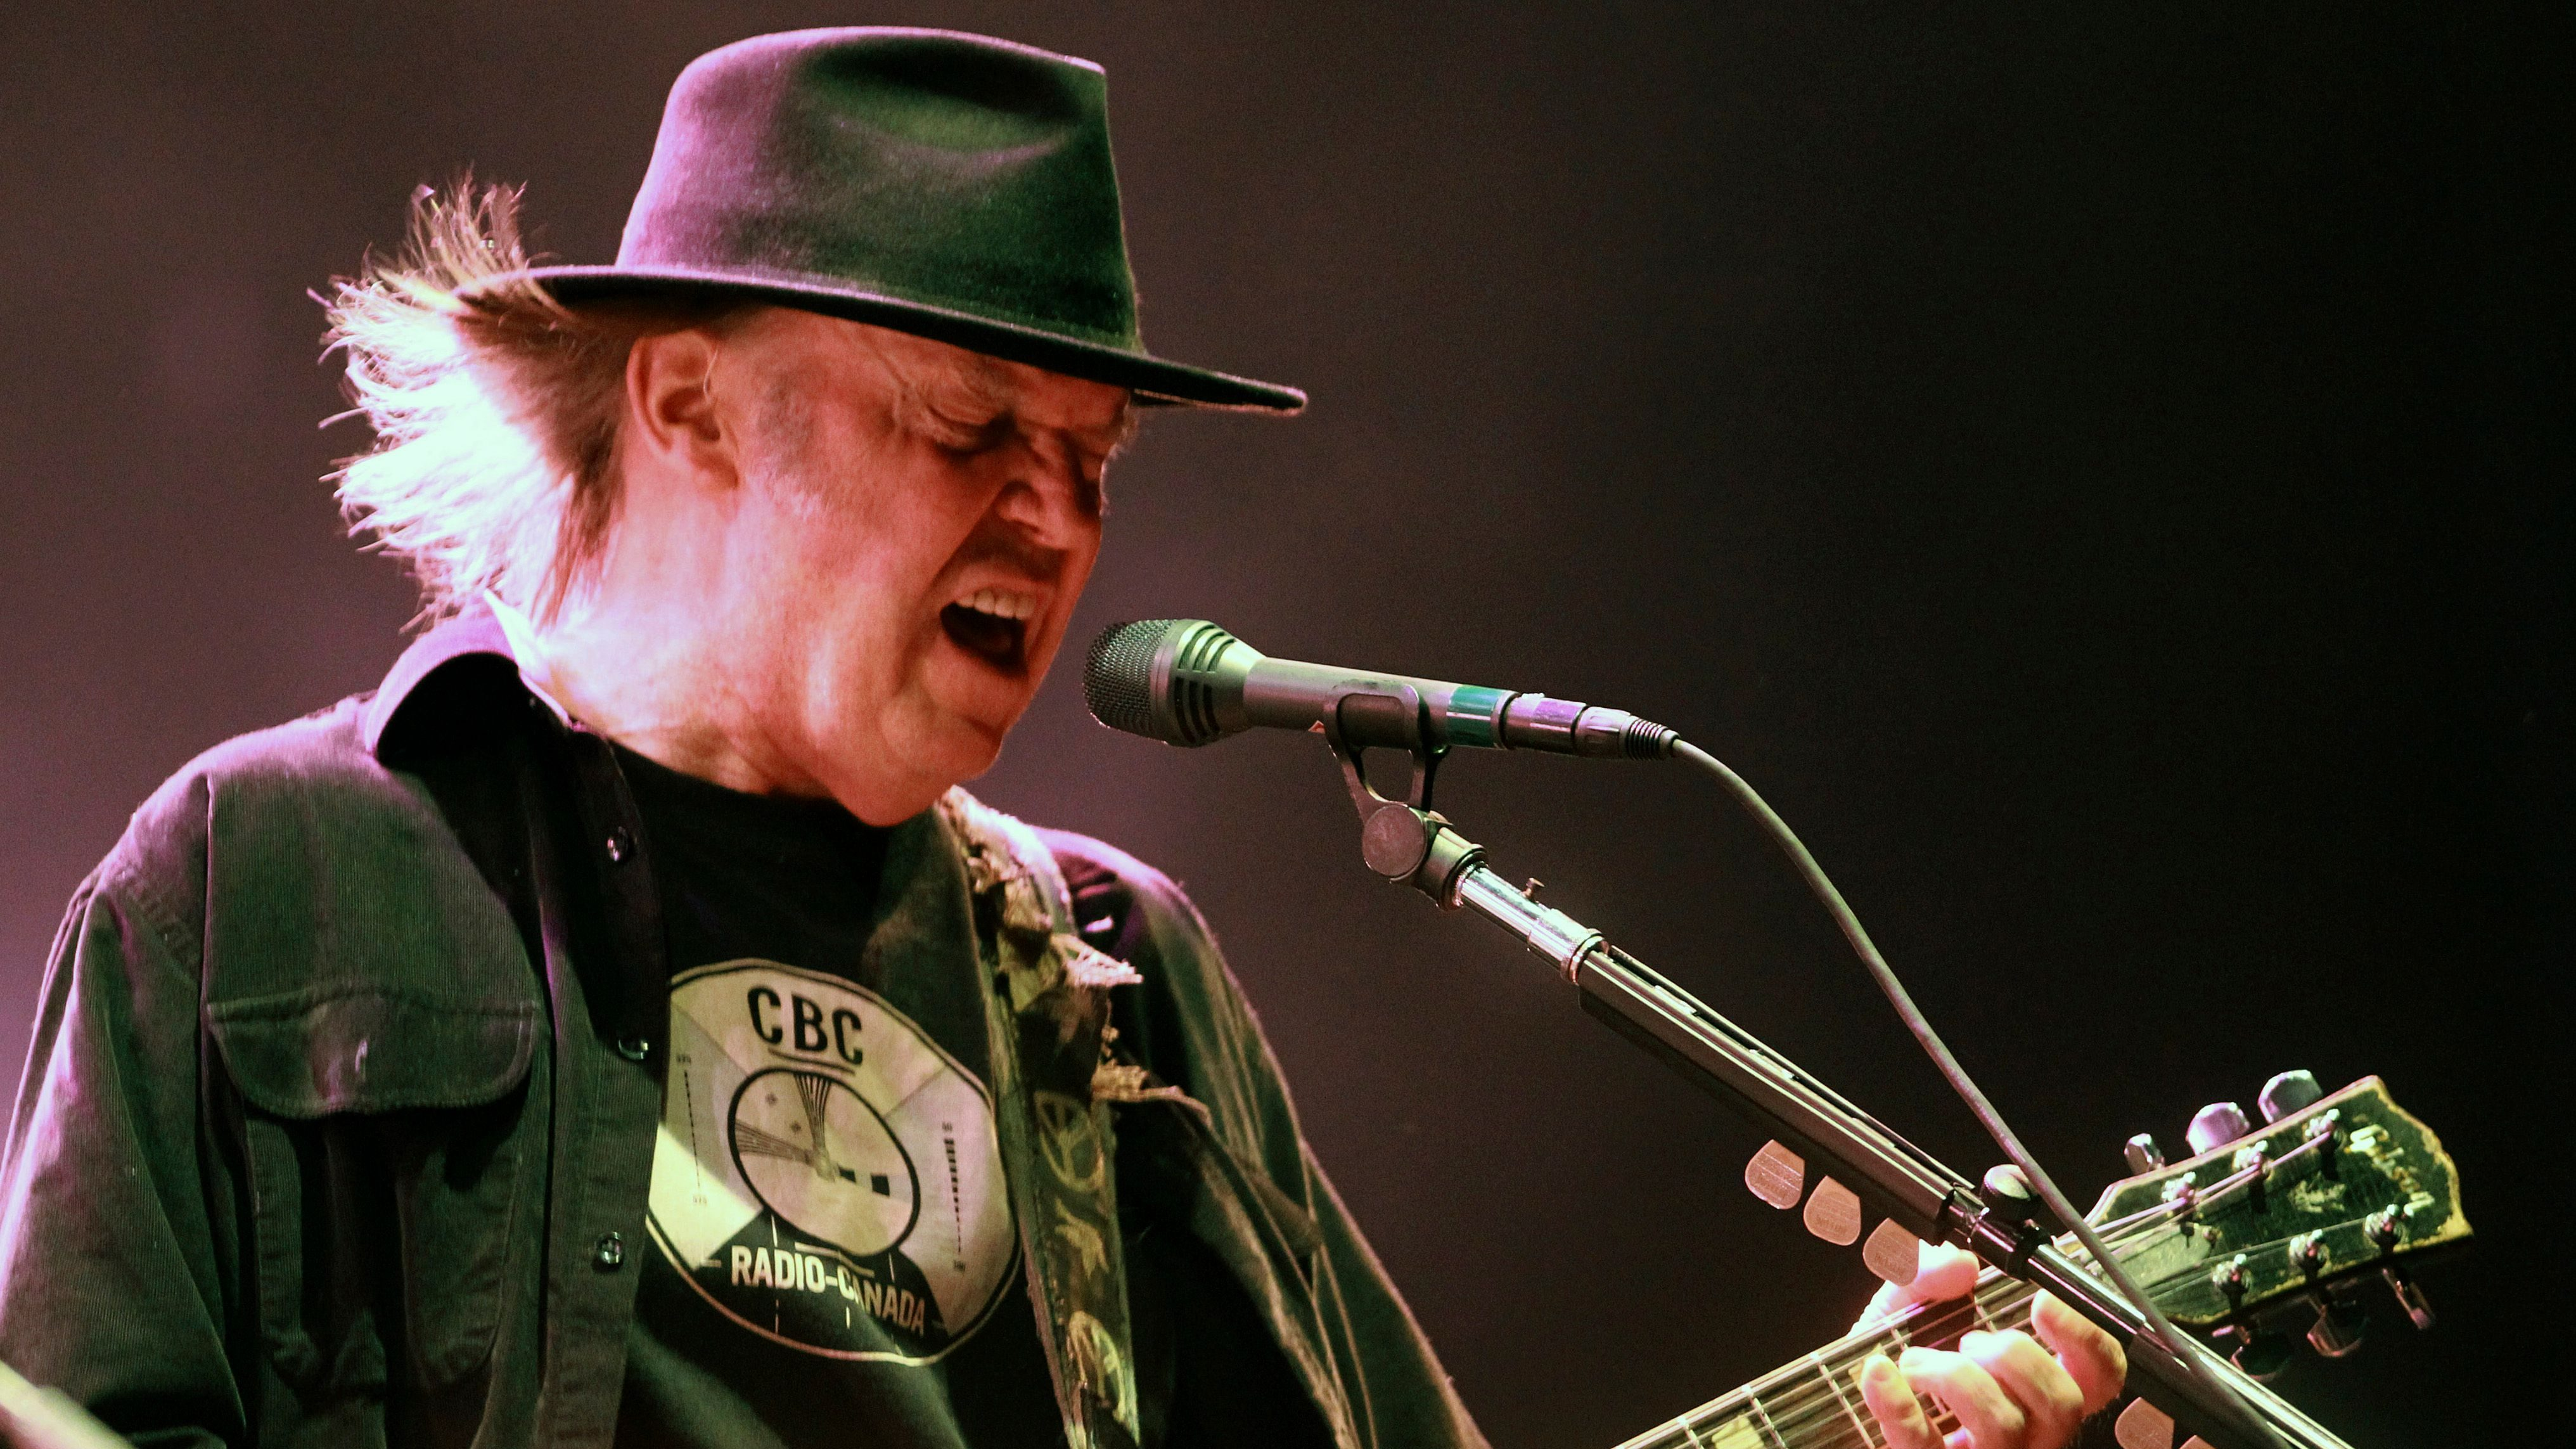 Musician Neil Young performs with his band 'Crazy Horse' during a concert in Biarritz, southwestern France, Thursday, July 18, 2013. (AP Photo/Bob Edme)